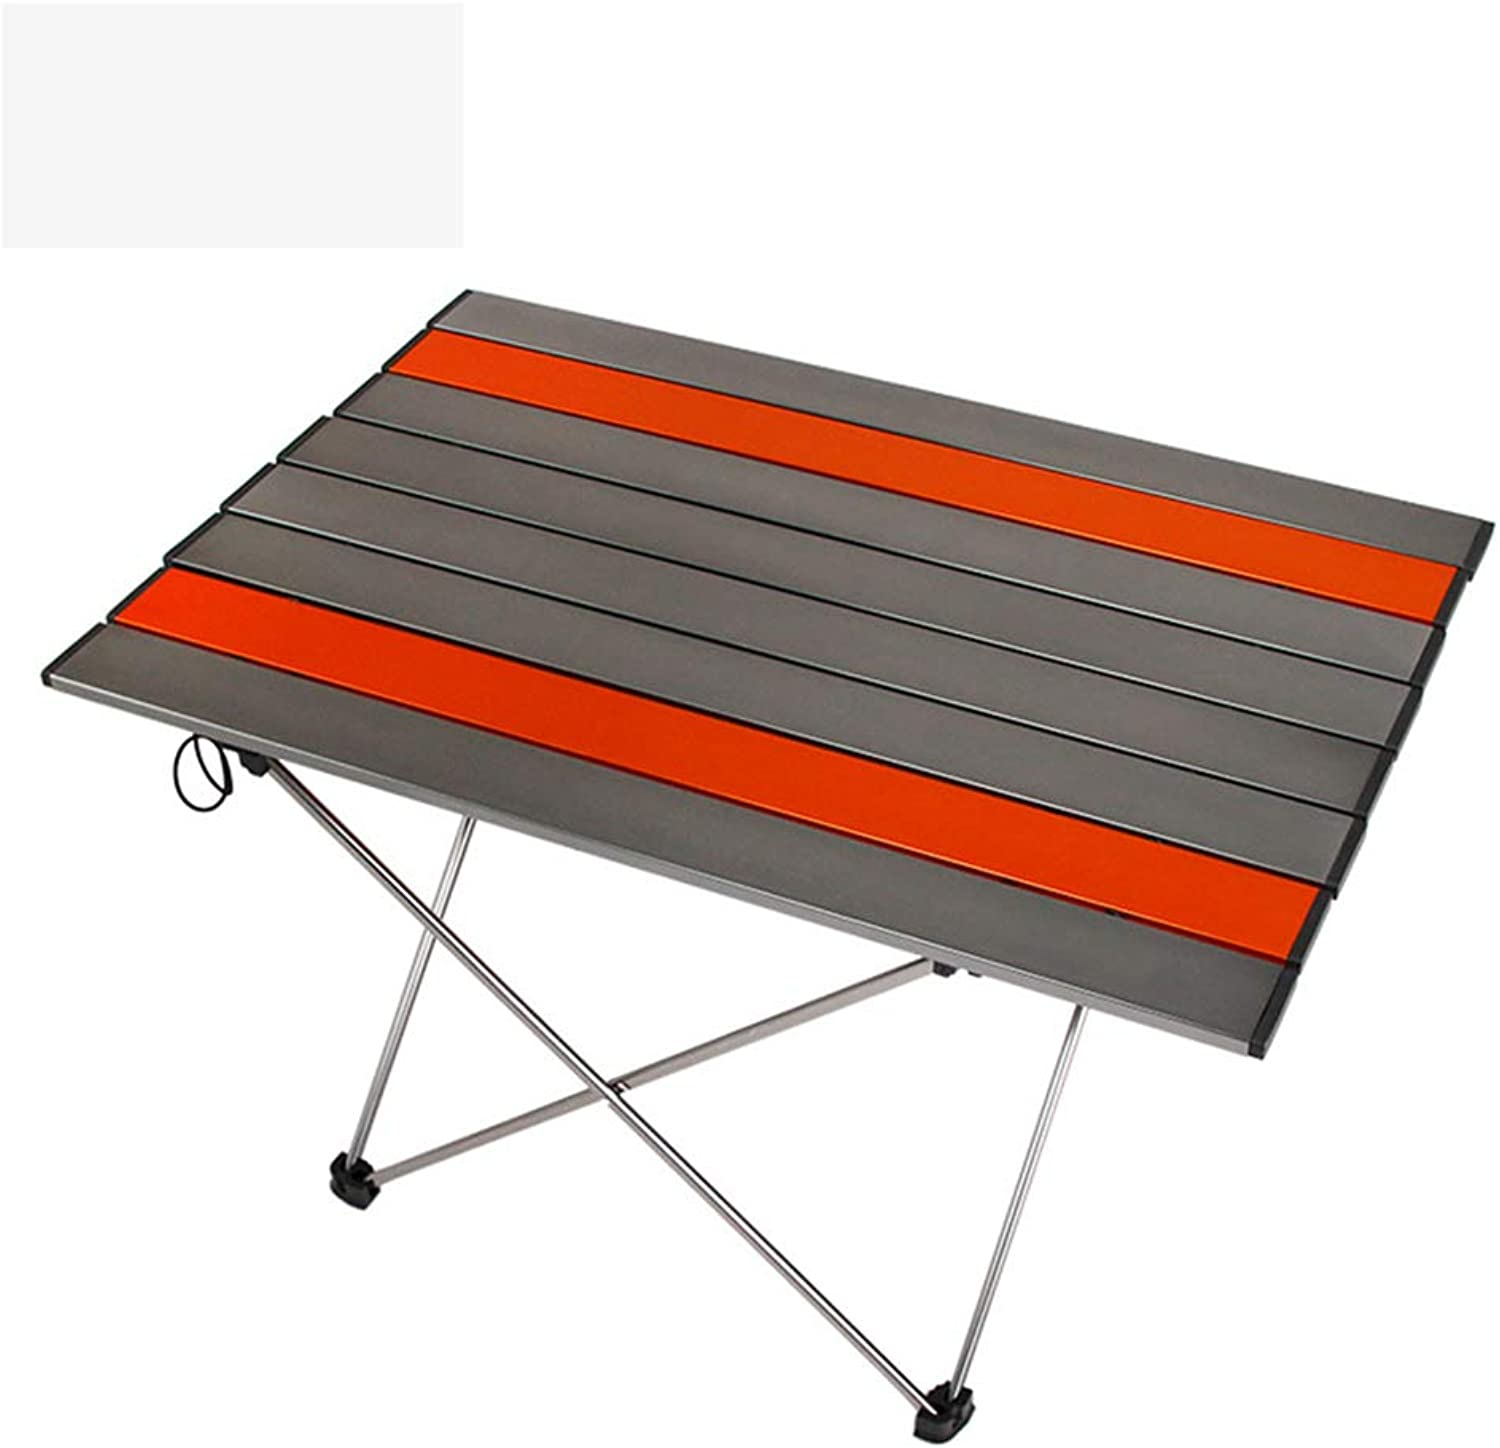 Aluminum Folding Table   Hard-Topped Folding Table in a Bag for Picnic, Camp, Beach, Boat, Useful for Dining & Cooking with Burner, Easy to Cleang